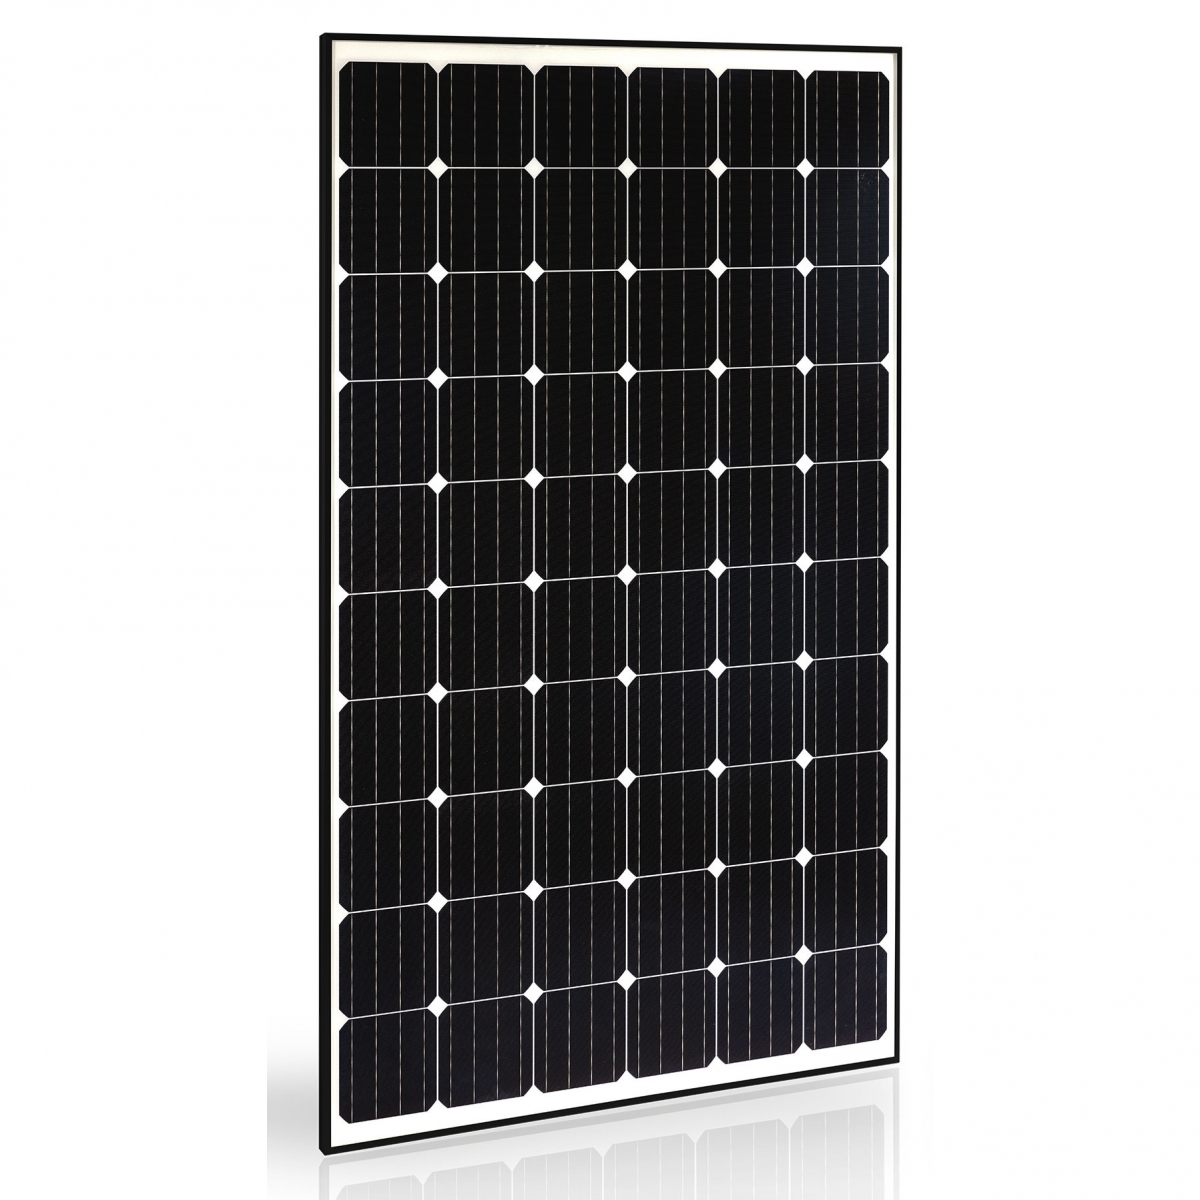 Back Contact Technology Trienergia Therefore The Photovoltaic Panels Of A Solar Powered System Use Innovative Solution